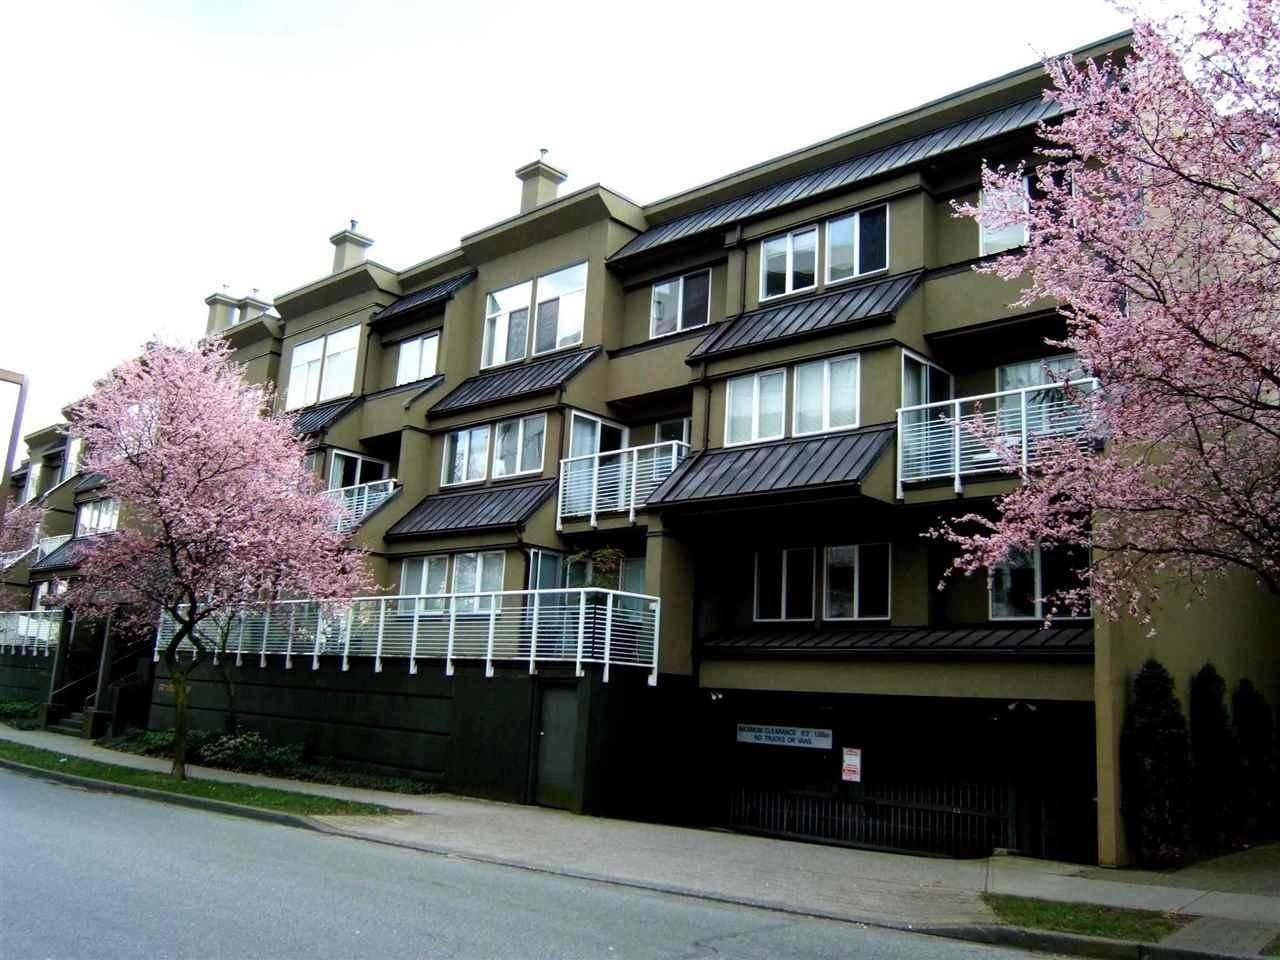 307 650 MOBERLY ROAD, Vancouver - R2324795